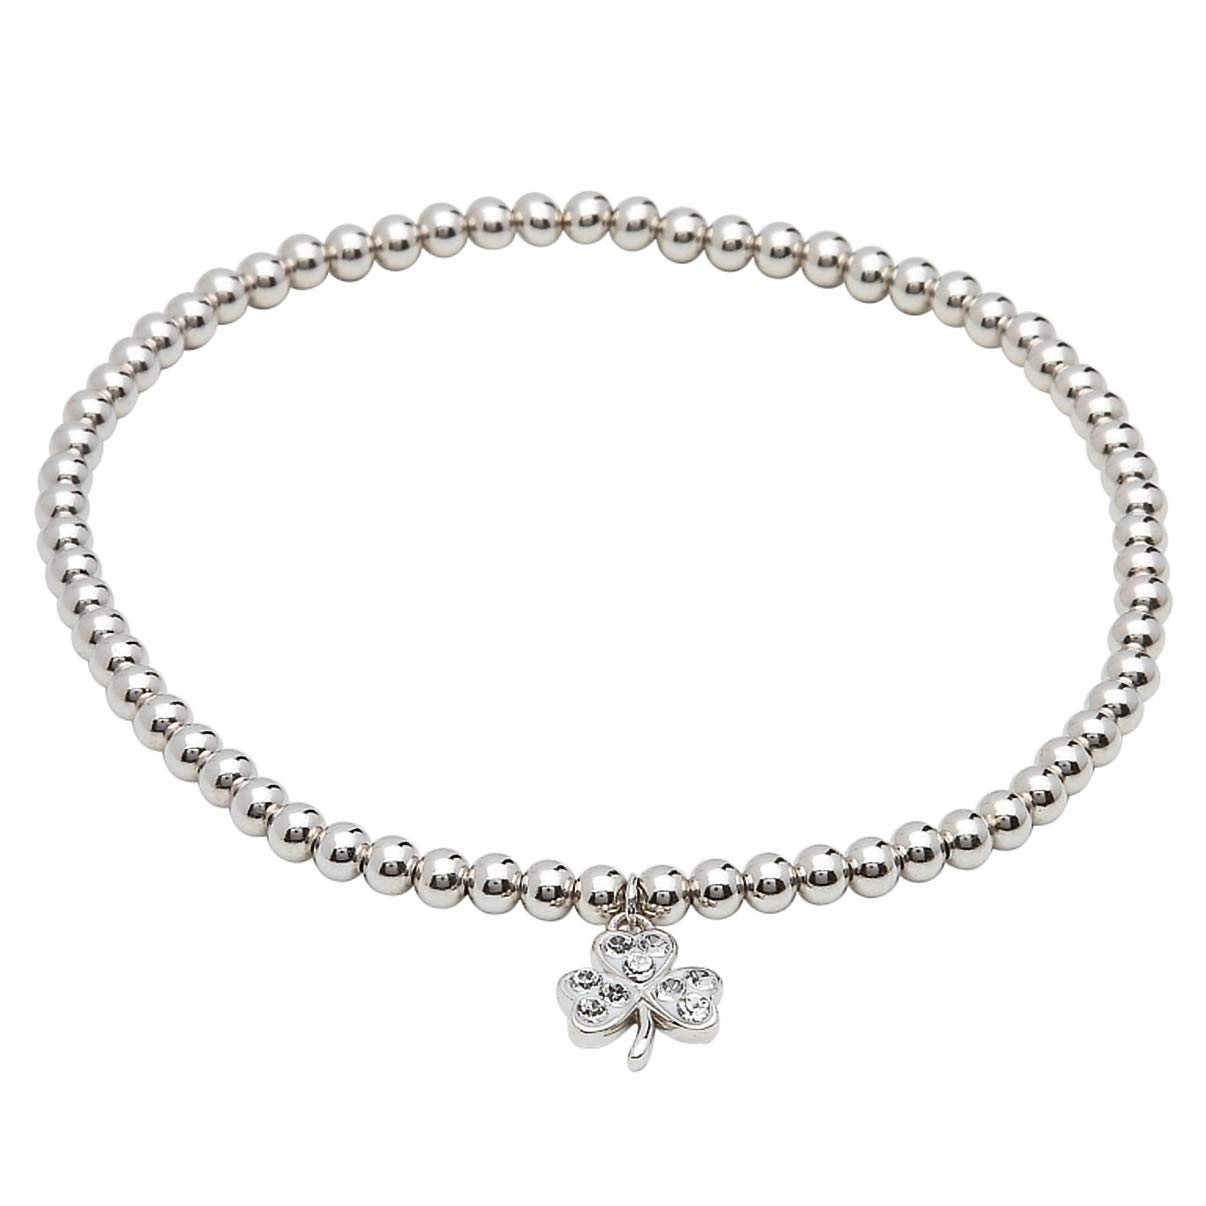 Hallmarked Sterling Silver Shamrock Bracelet With White Swarovski Crystal